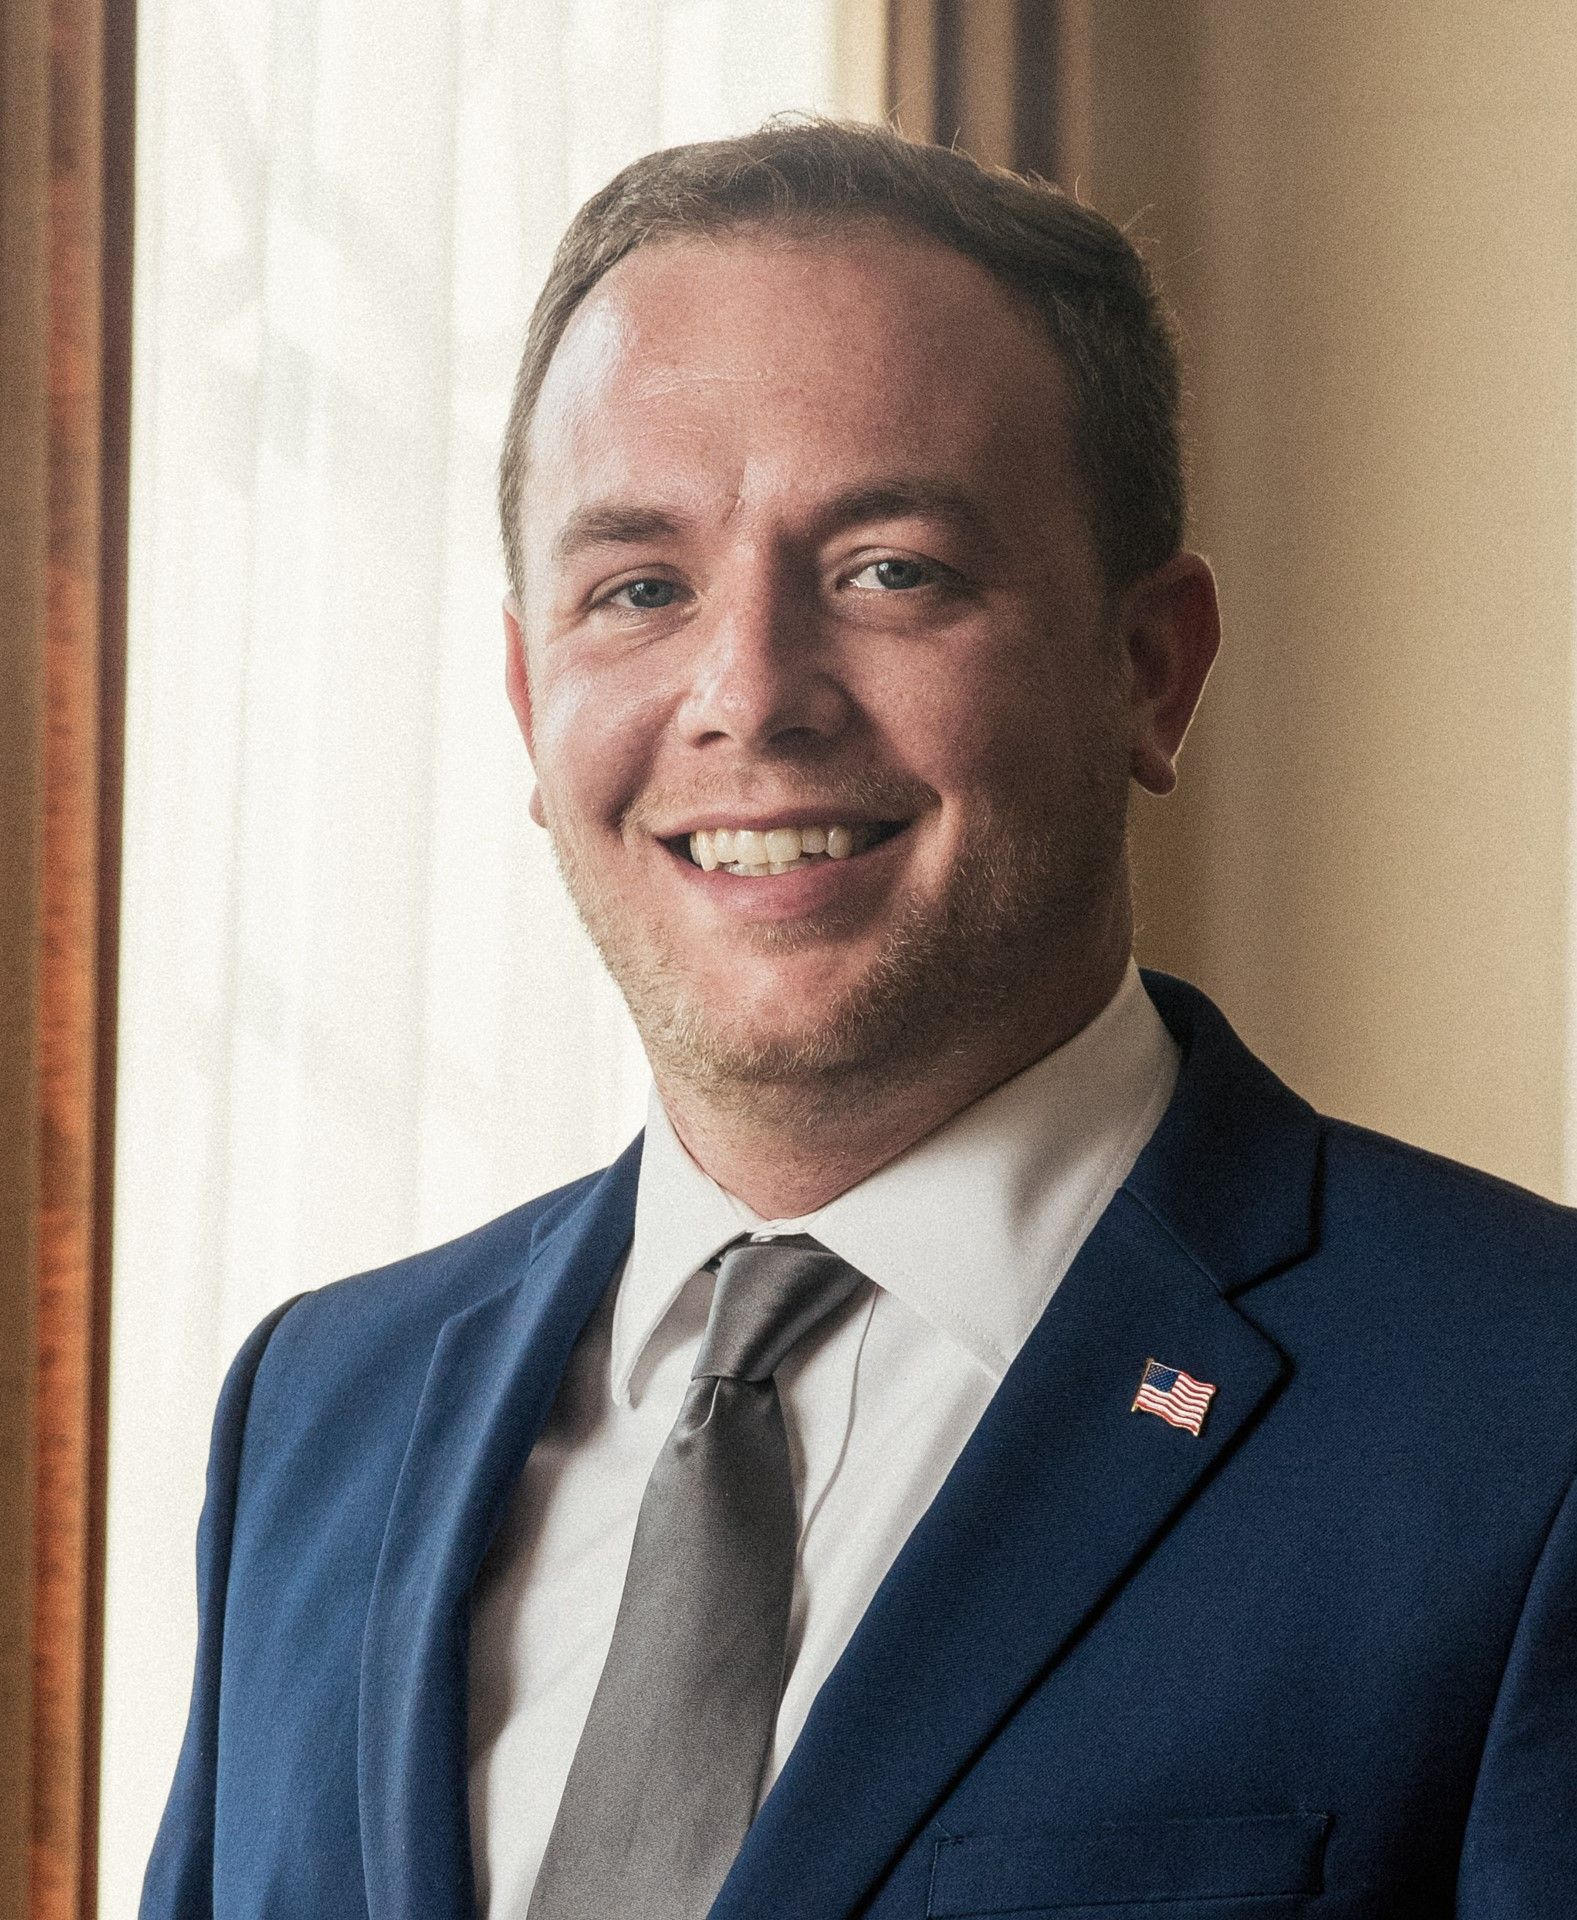 Photo of Heath Himes - Funeral Director's Assistant